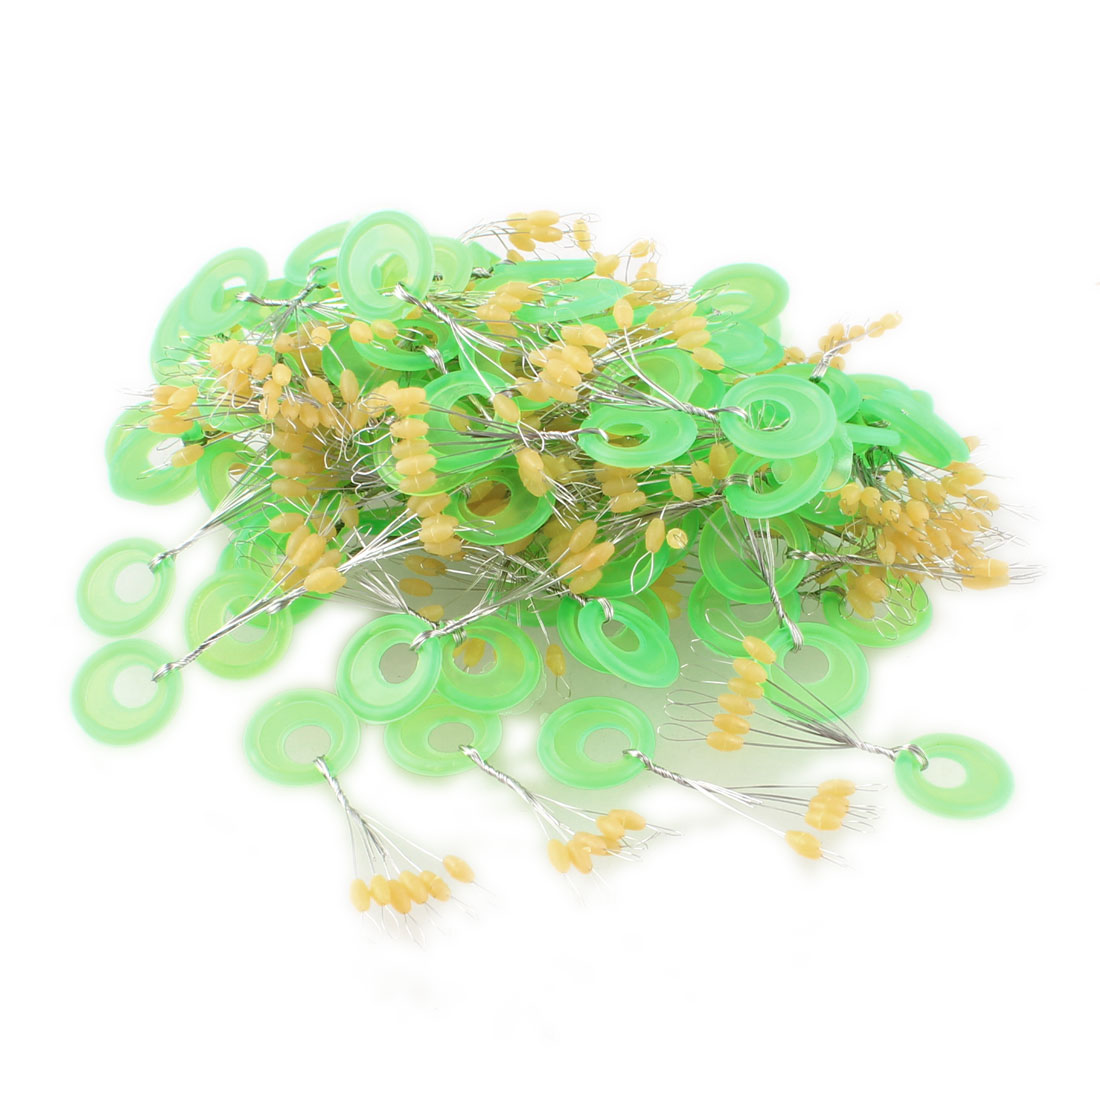 98 Pcs 6 in 1 Oval Shaped Green Plastic Fishing Floating Bobbers